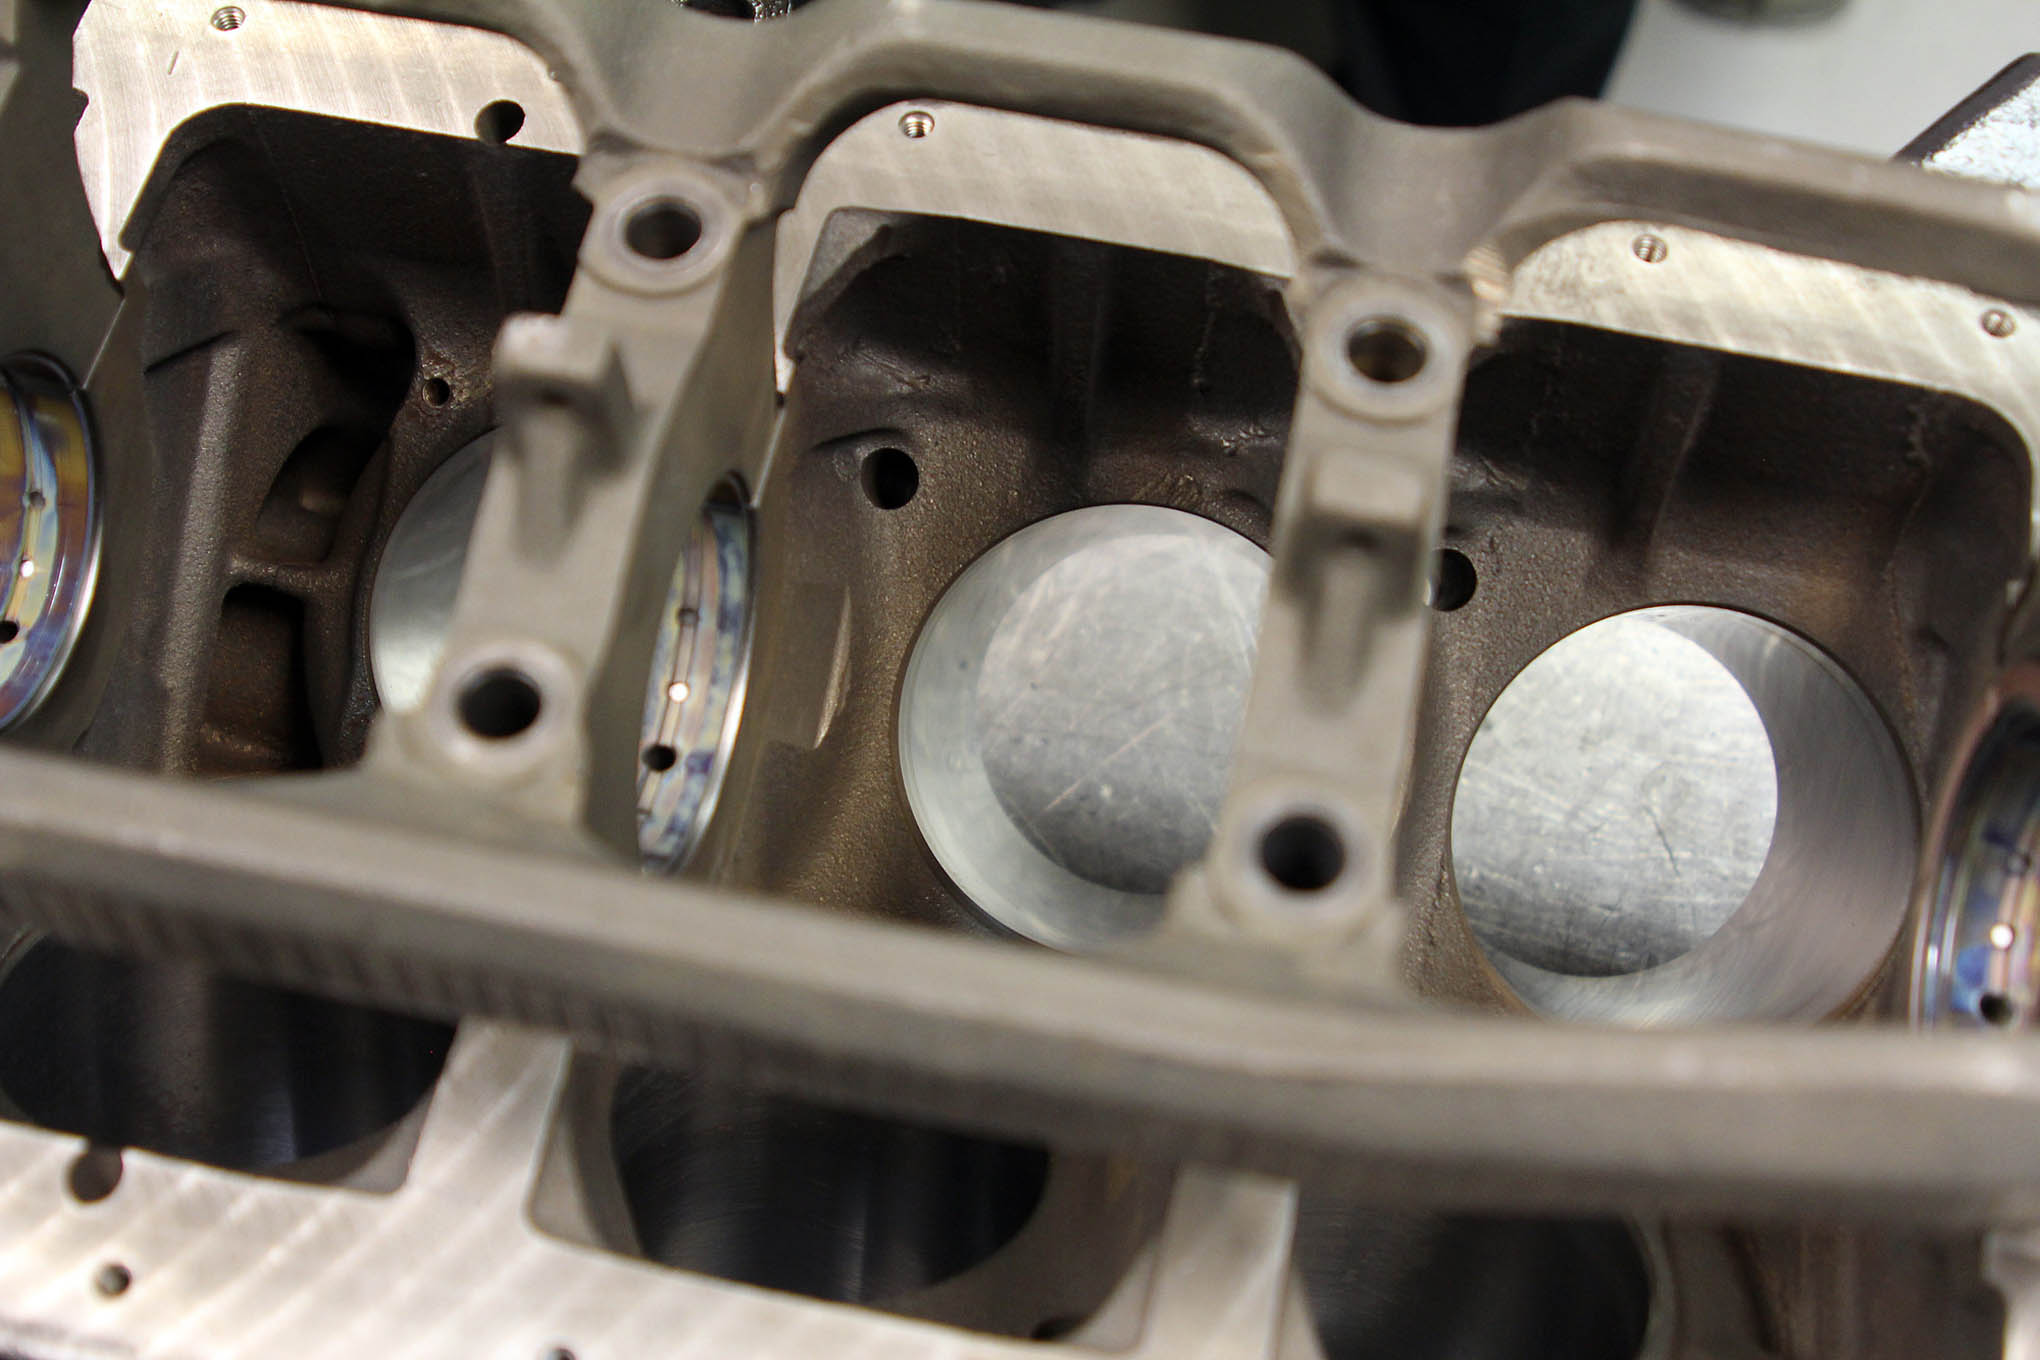 The stock cylinder bore is pretty small at just 3.43 inches. Rules typically allow a maximum overbore of 0.020 or 0.030 inches. For this rebuild, KT Engines honed the cylinders a minimal amount so that the racer should still be able to use this block for future rebuilds.